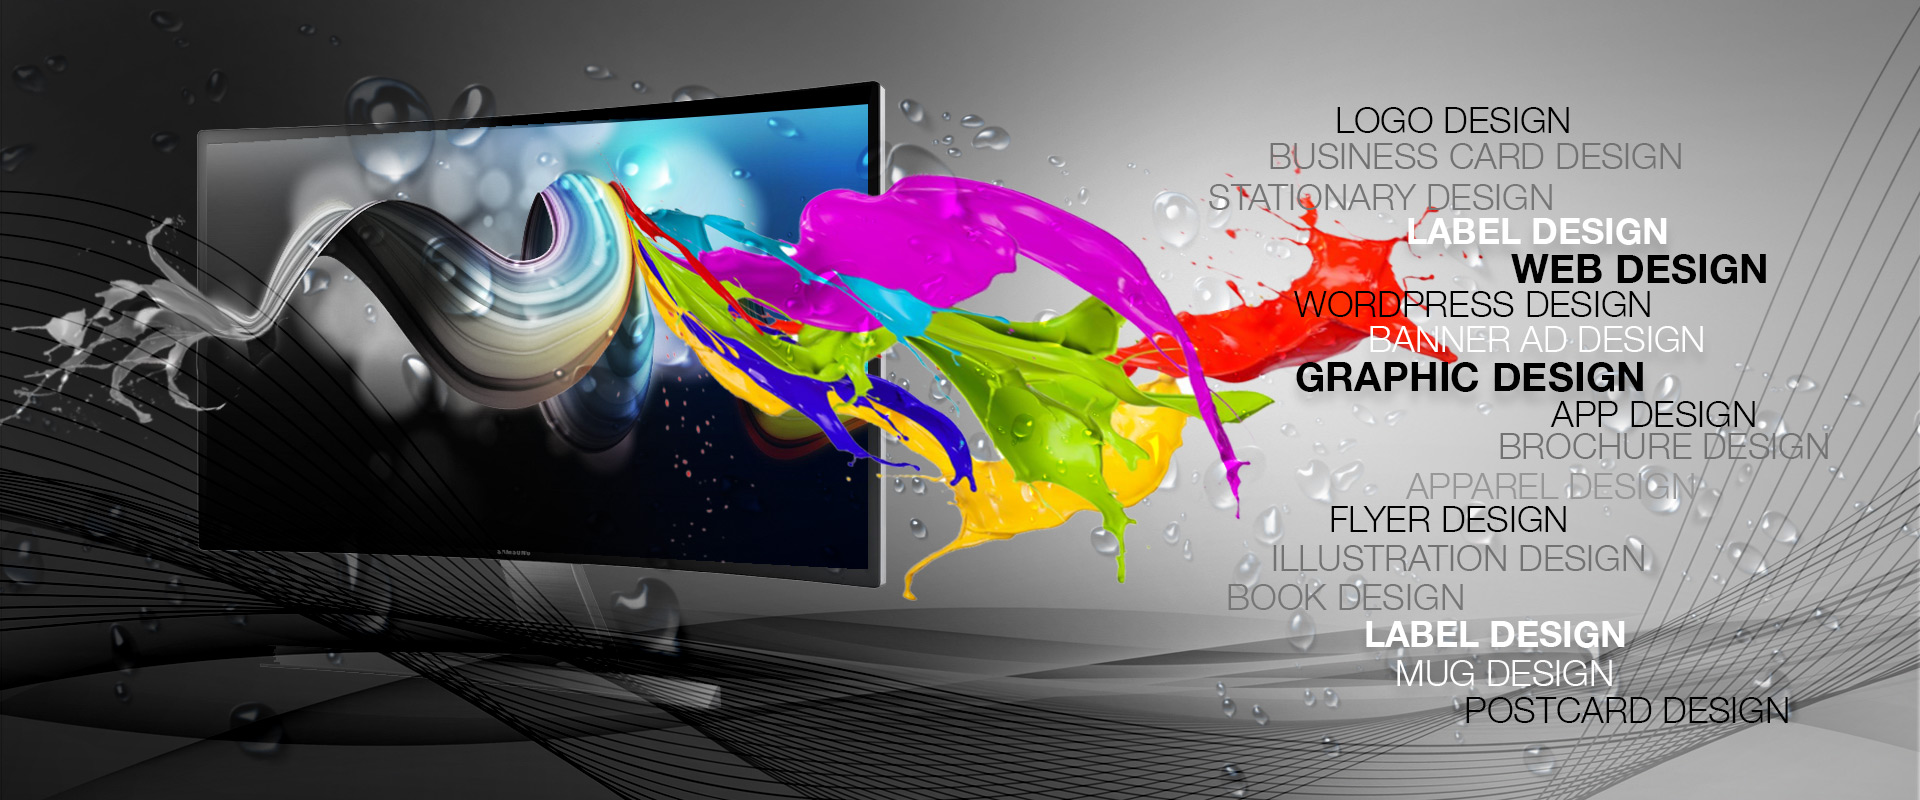 Banners-Poster-Design-Services by iGeekTeam.com